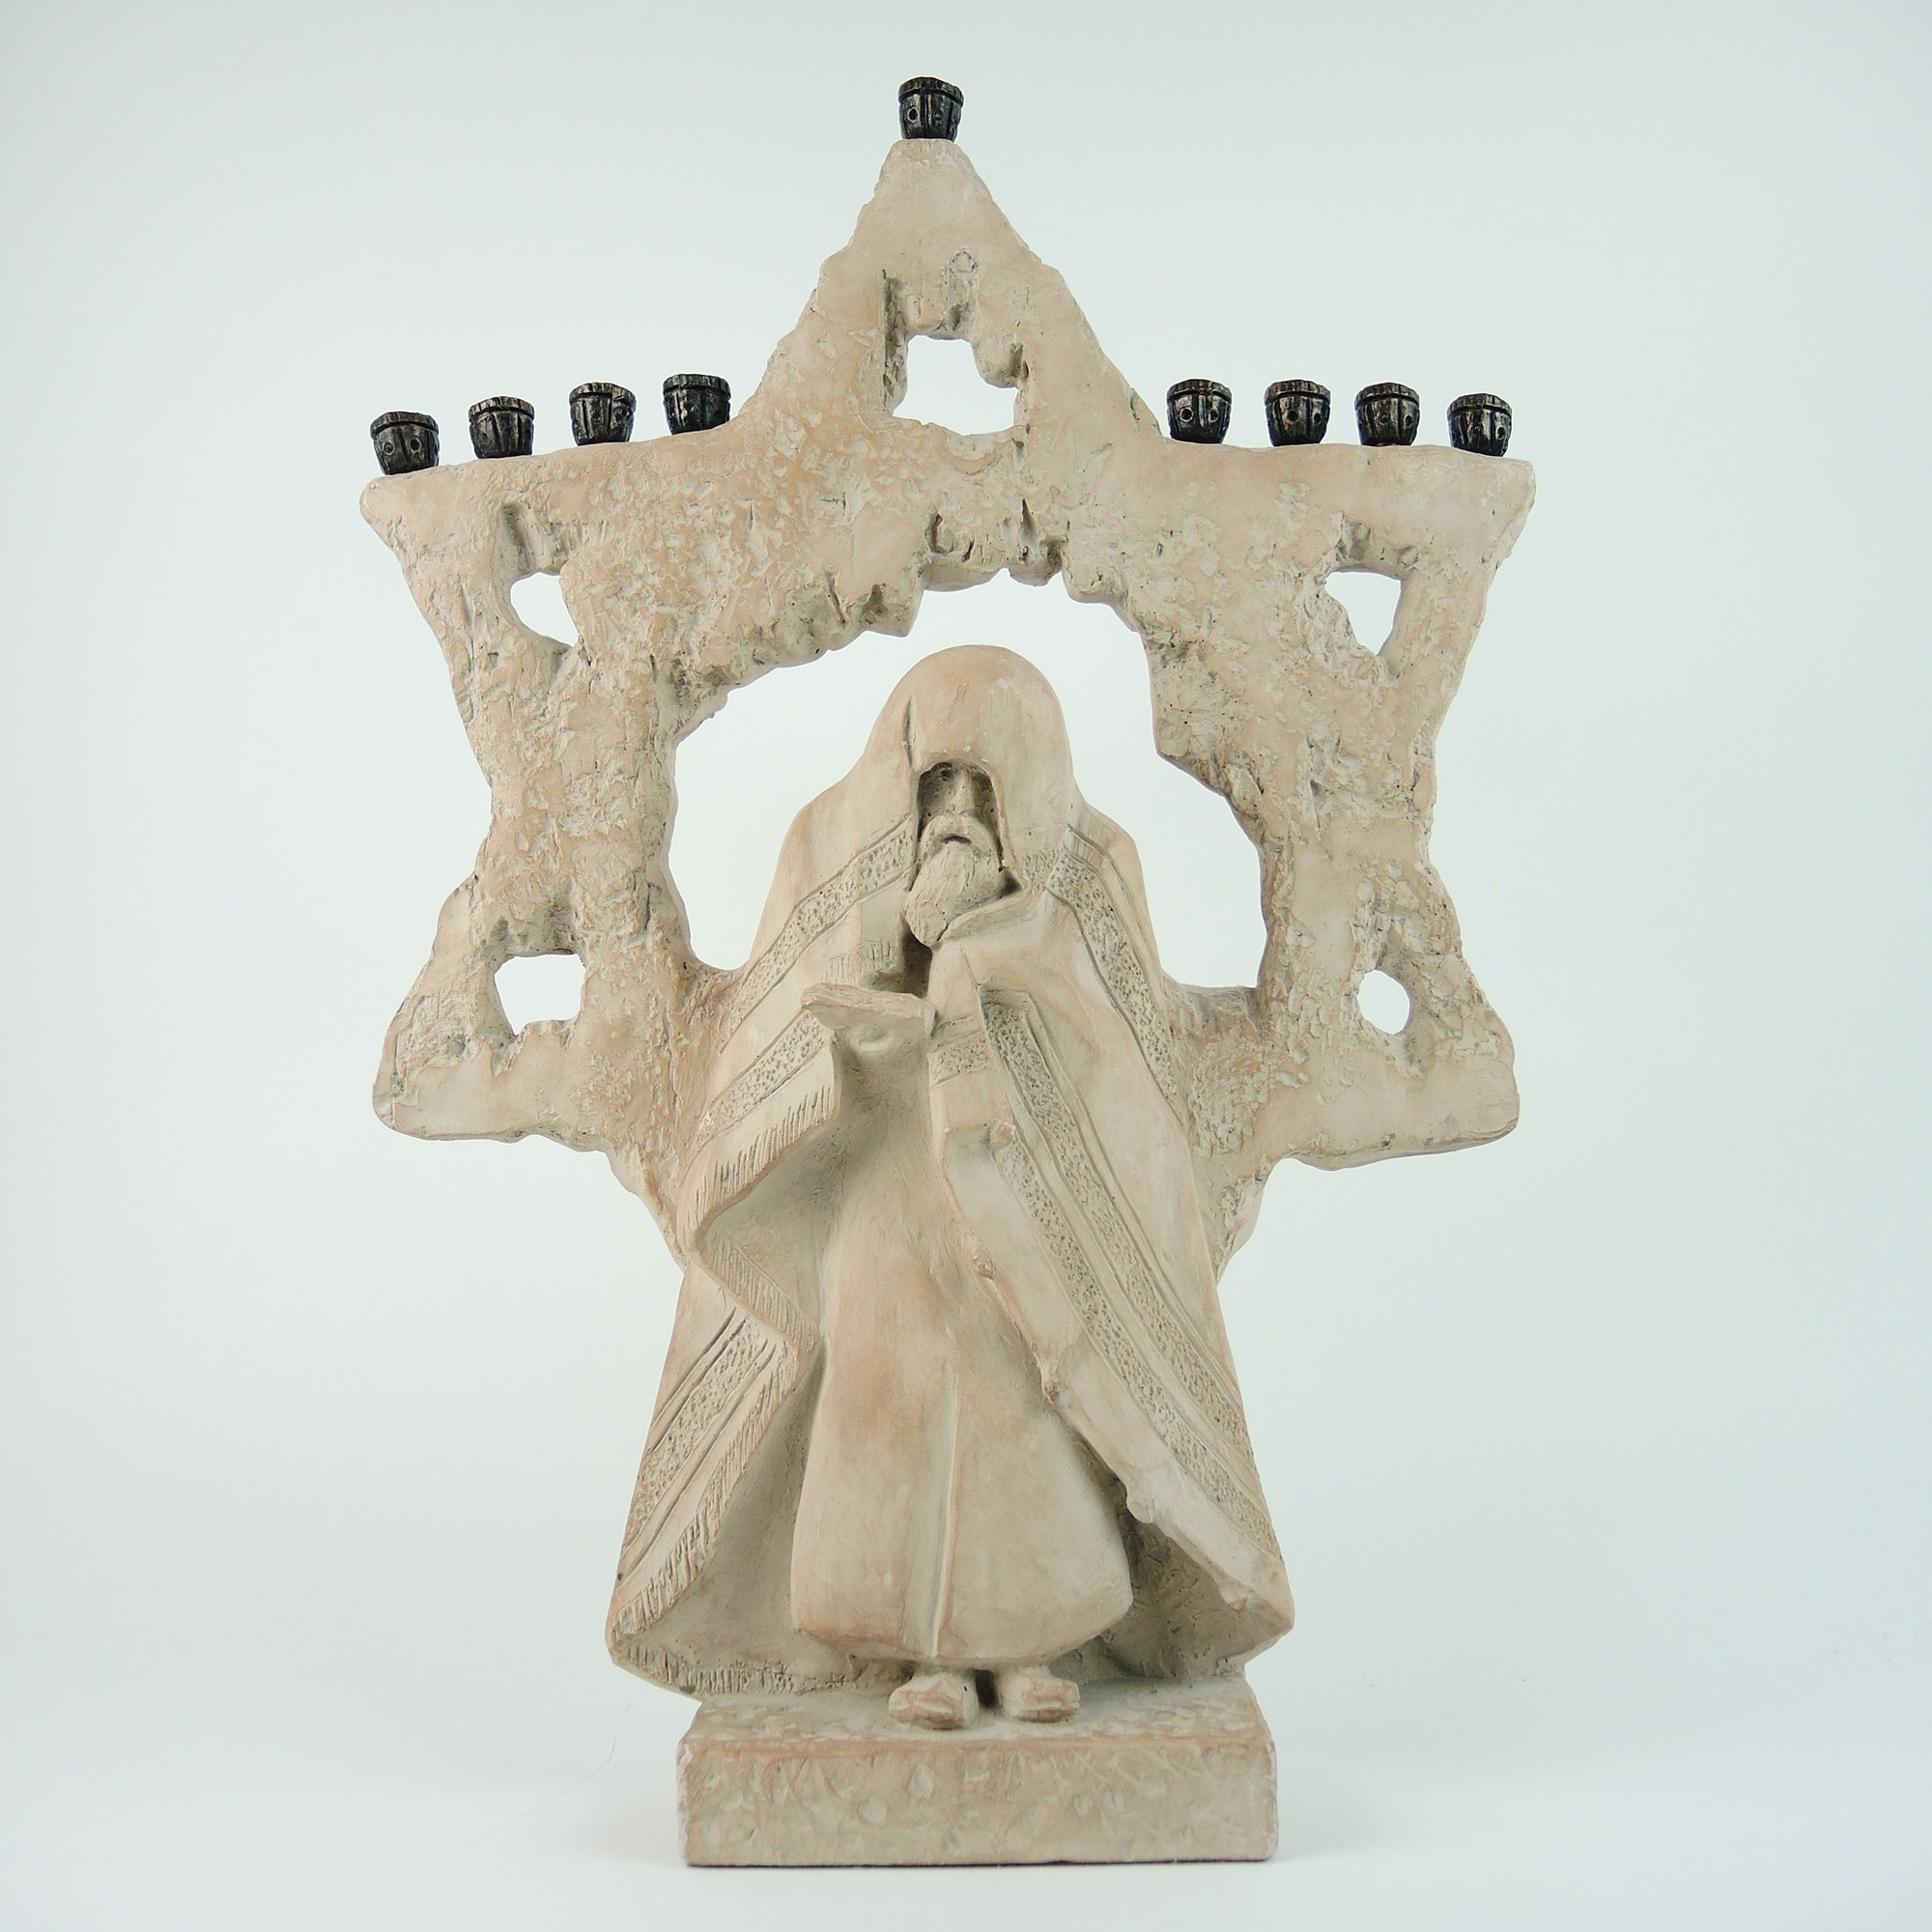 Large Roth Menorah Sculpture by Austin Productions 1981